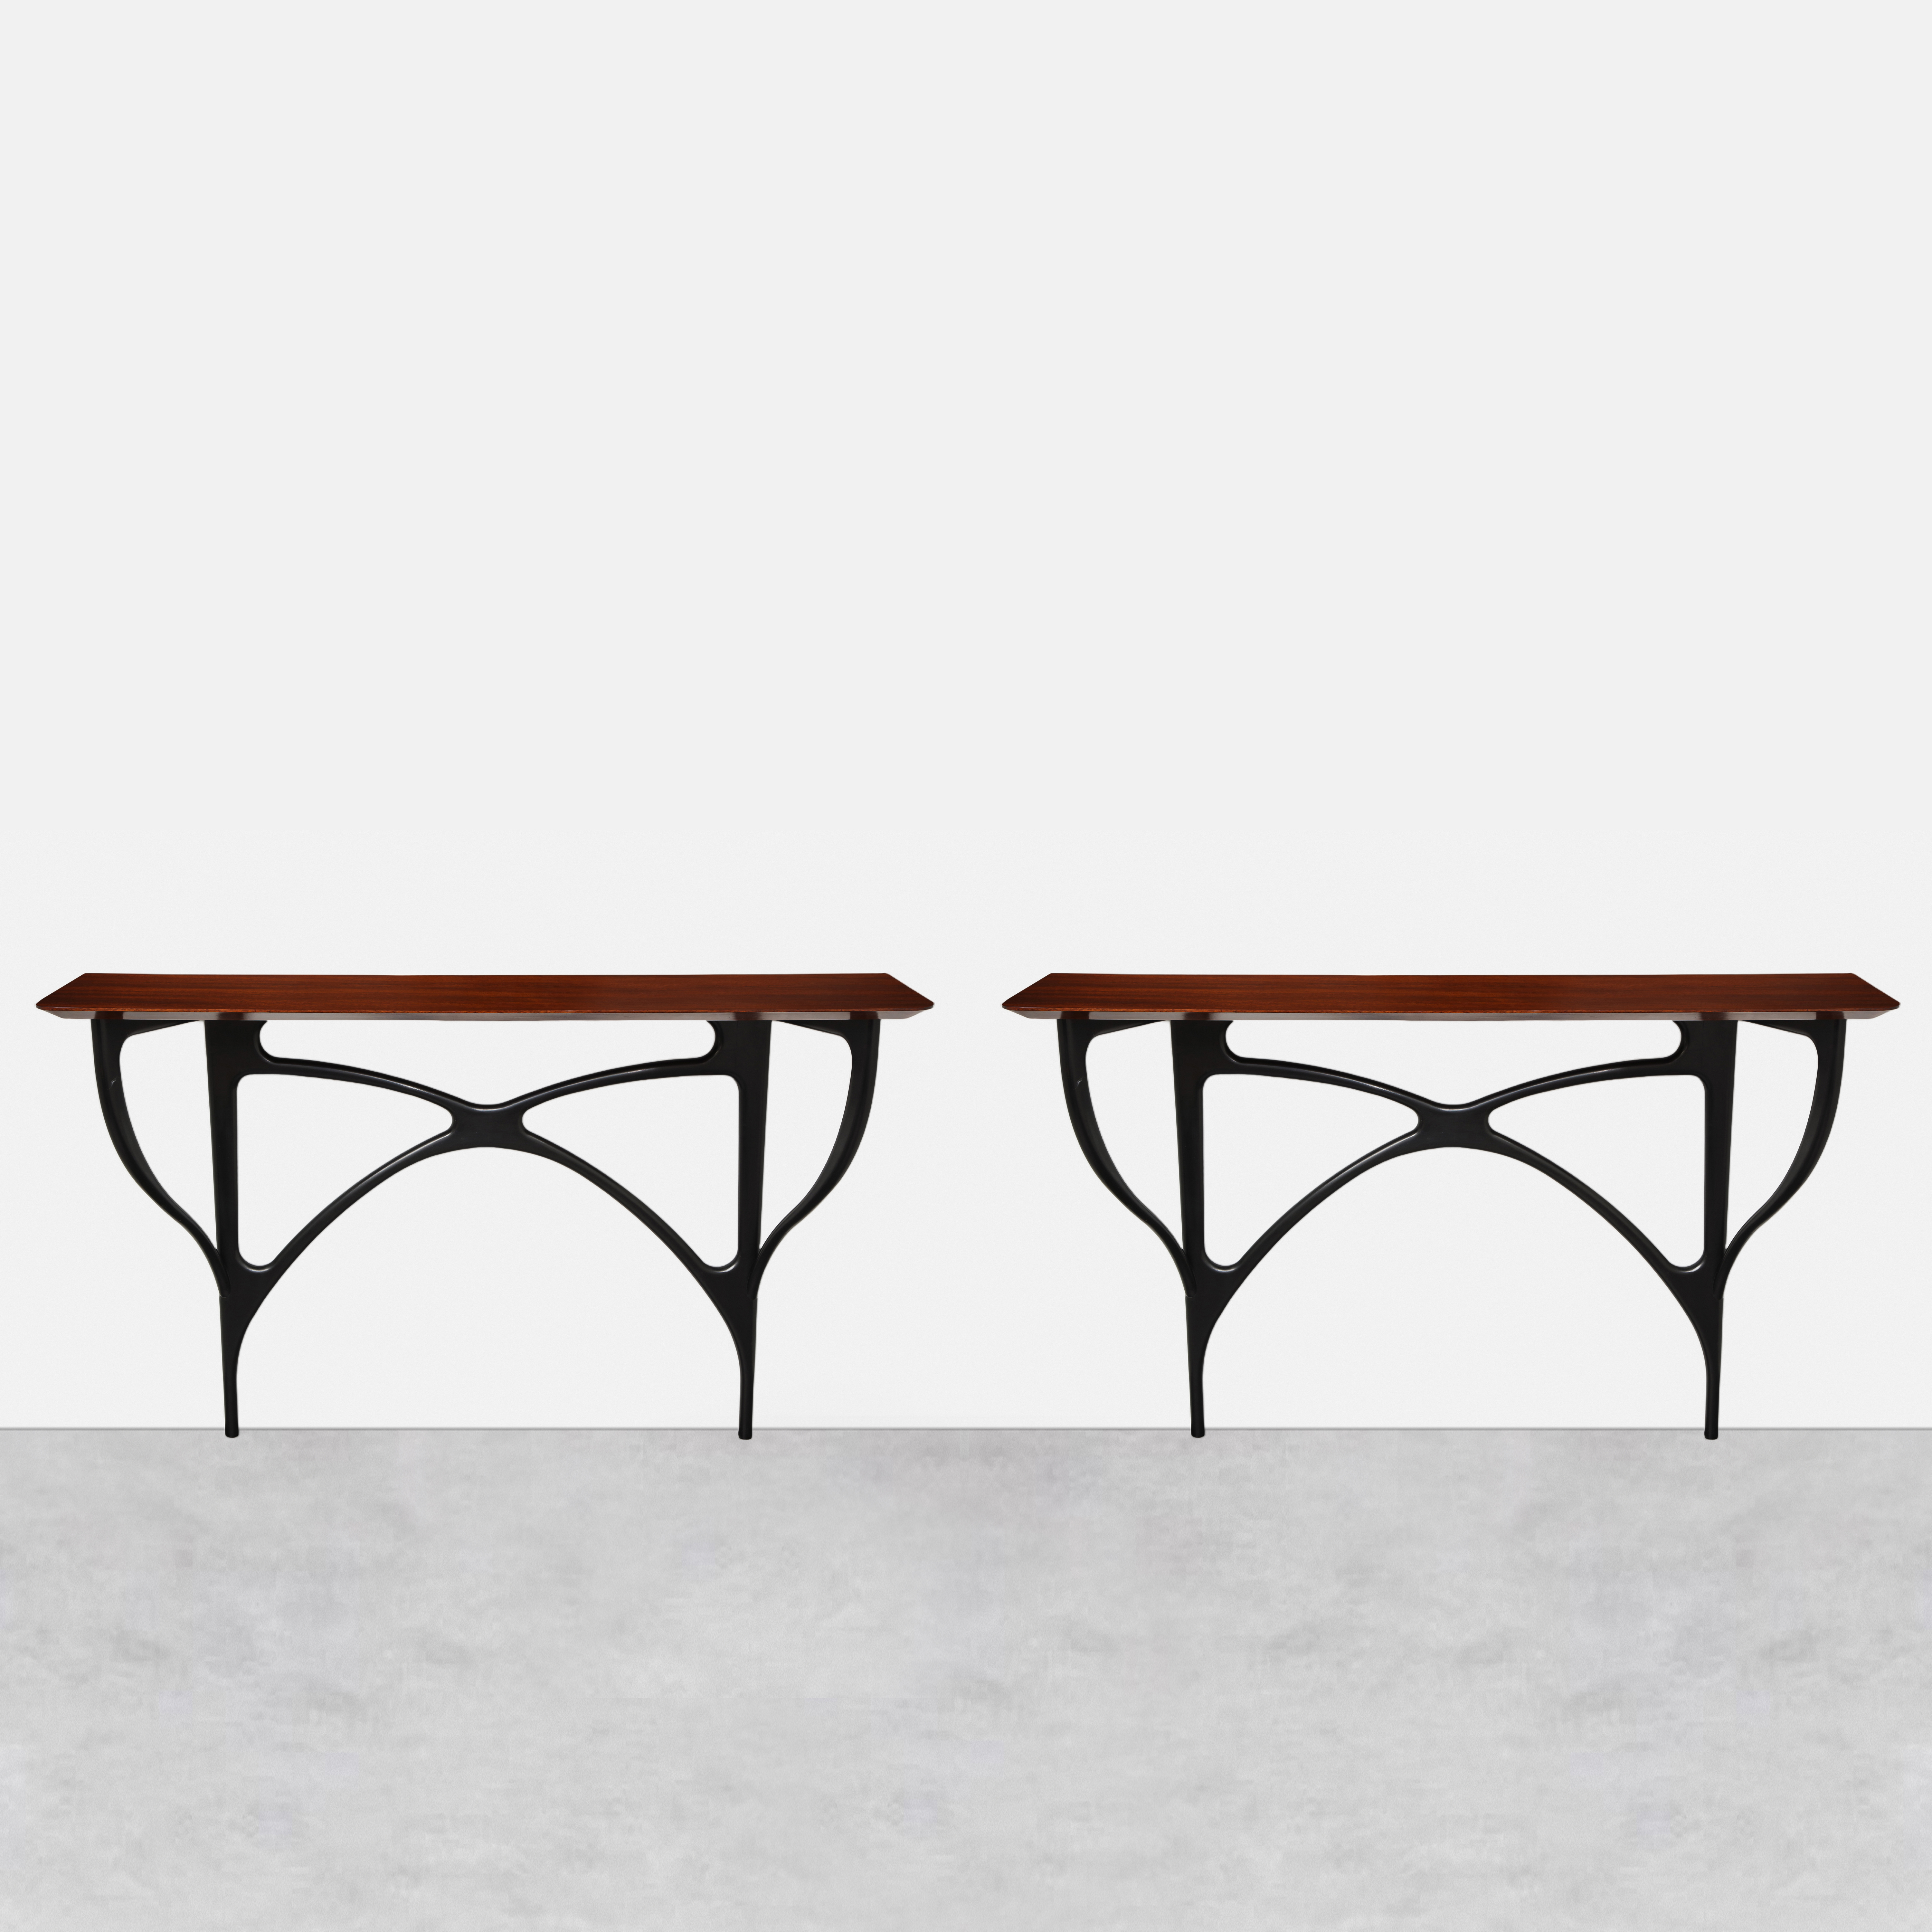 Pair of Consoles by Ico Parisi for ArteCasa   soyun k.